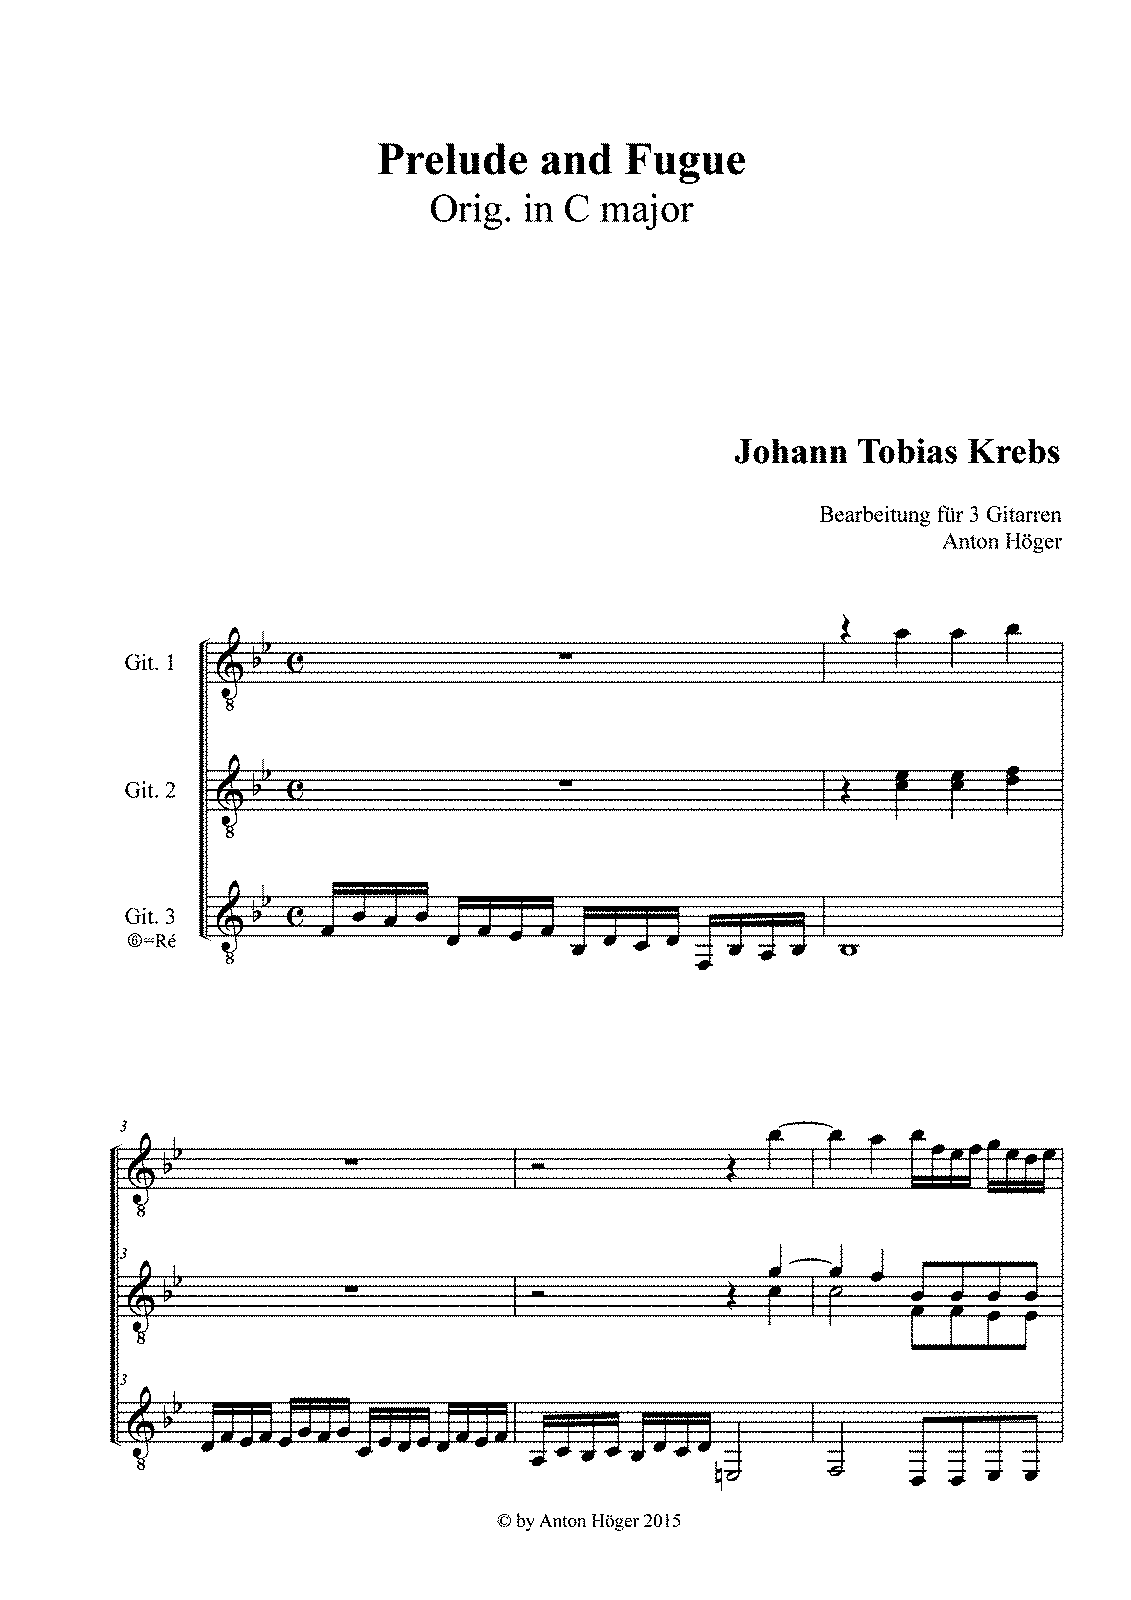 PMLP298959-Krebs, Johann Tobias - Prelude and Fugue in C major.pdf